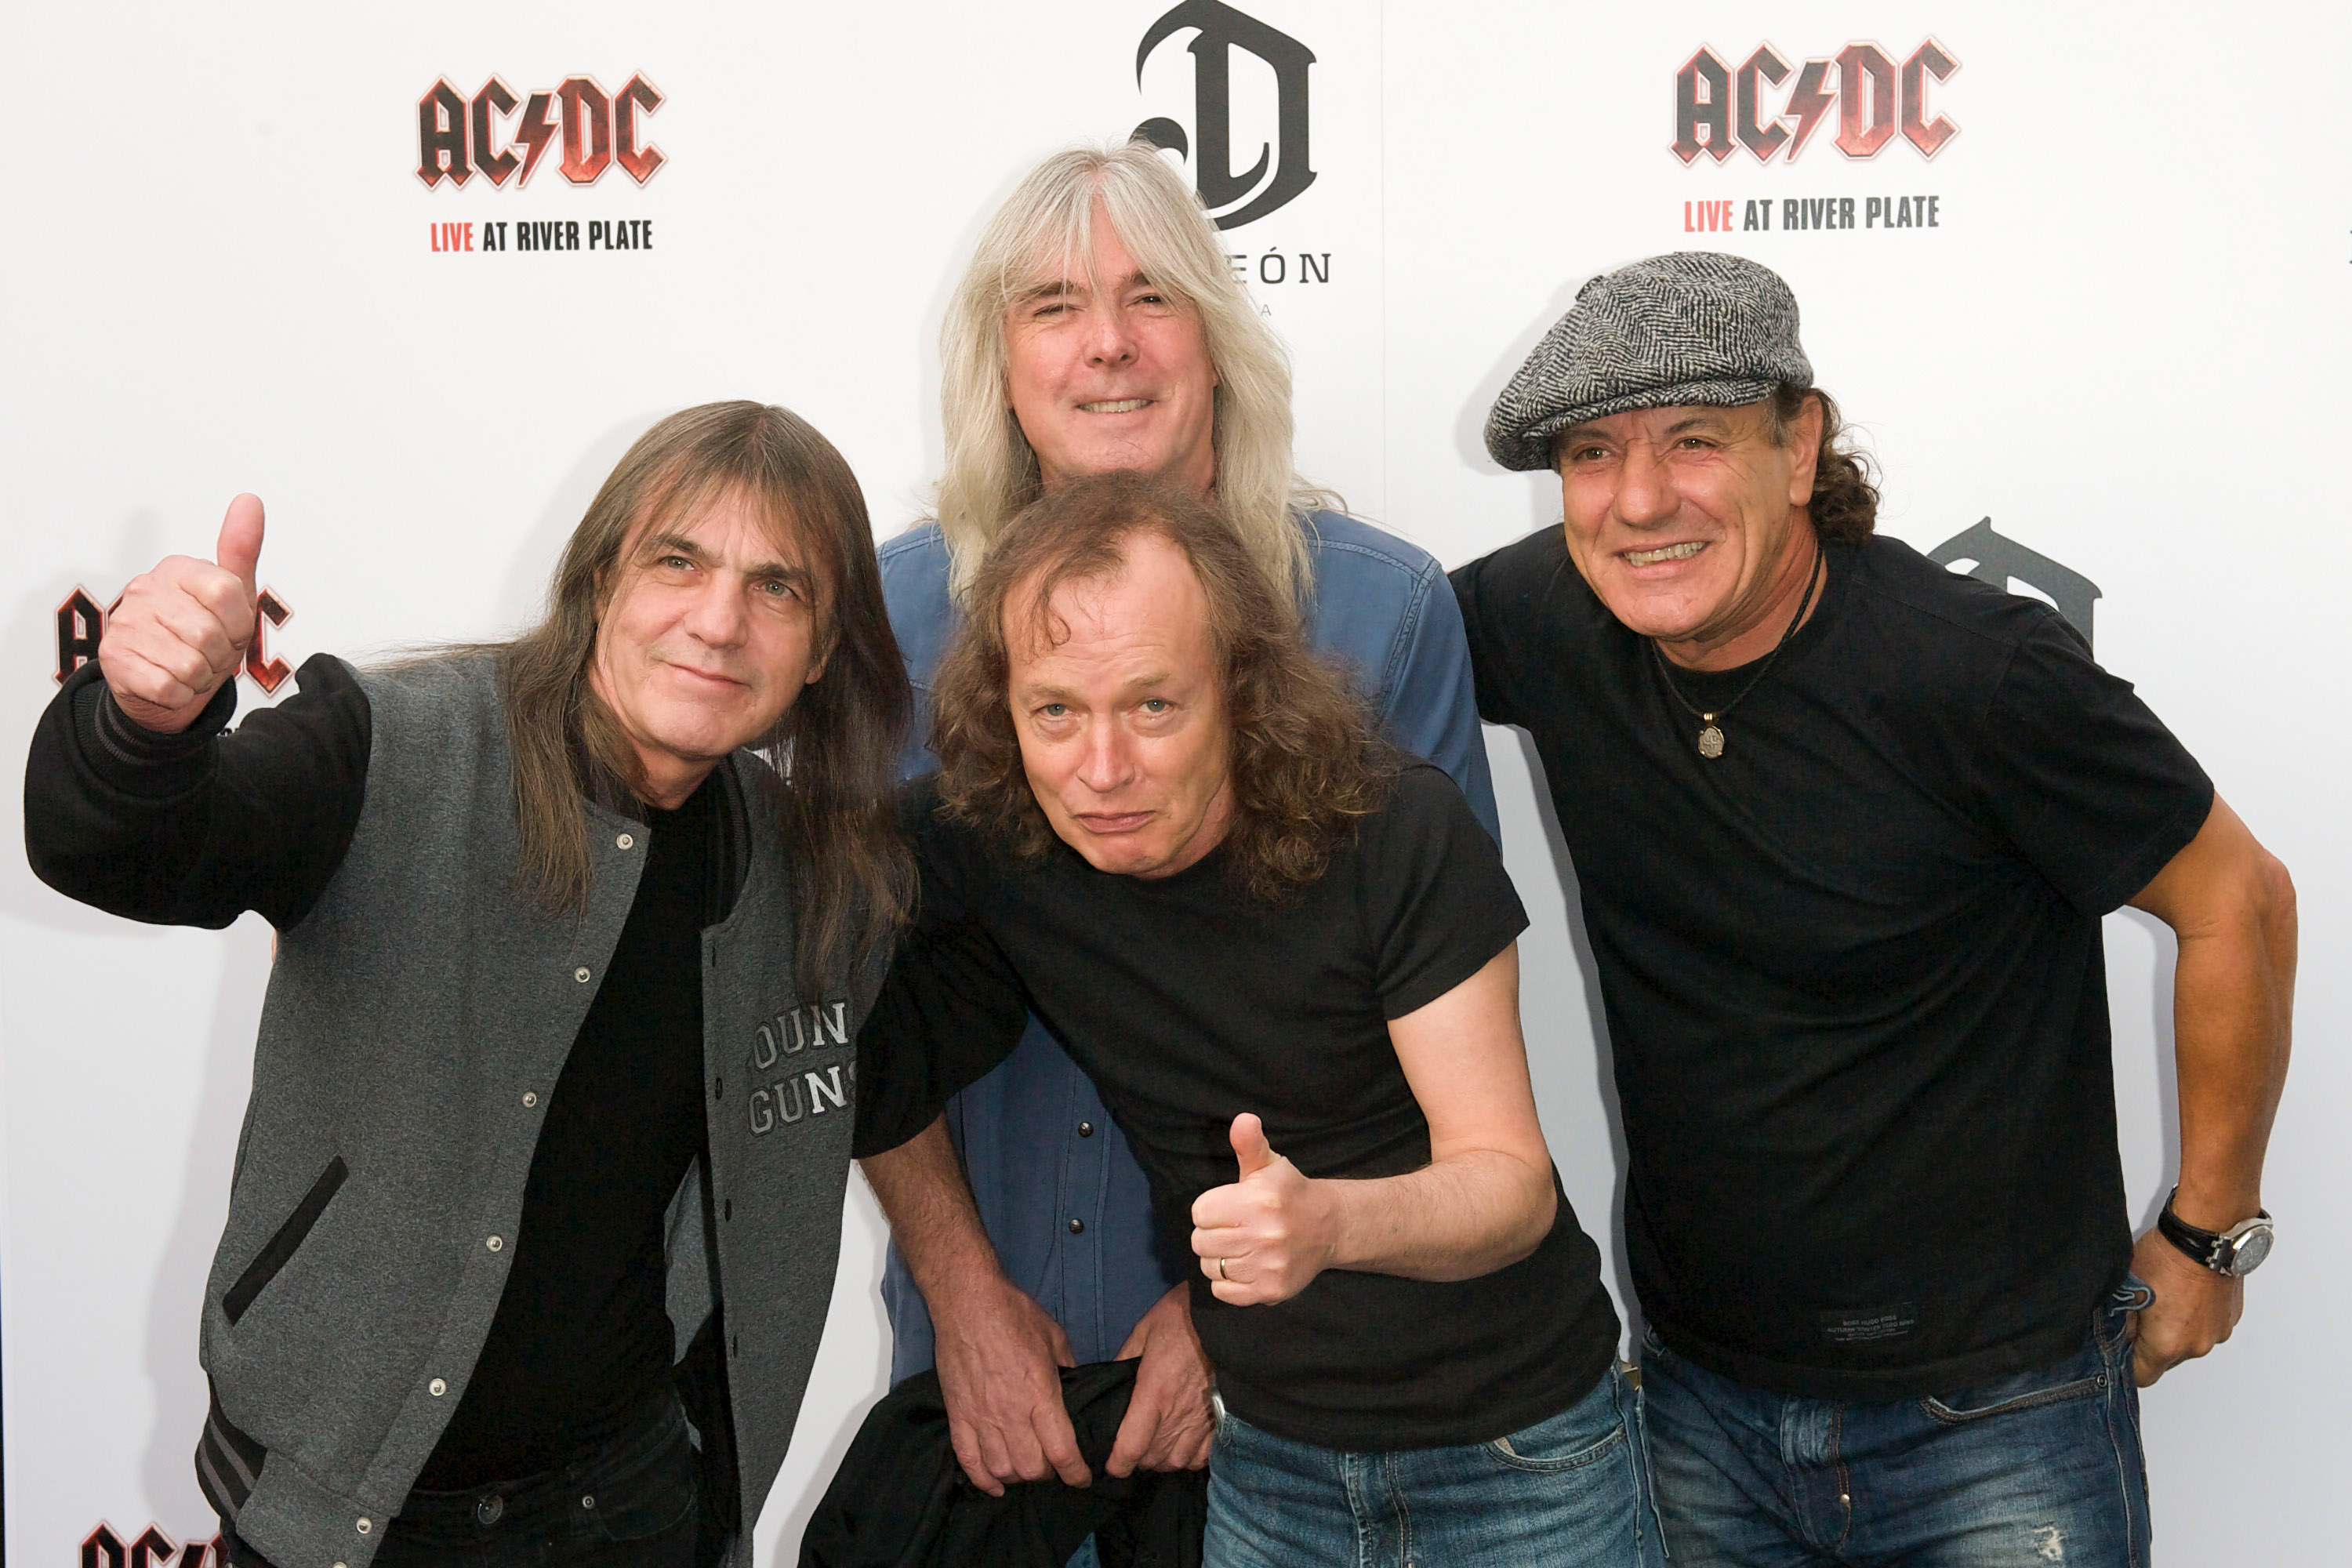 From left to right: AC/DC band members Malcolm Young, Cliff Williams, Angus Young and Brian Johnson attend the Exclusive World Premiere Of AC/DC  Live At River Plate  Presented By DeLeon Tequila at the HMV Apolo on May 6, 2011 in London, England.